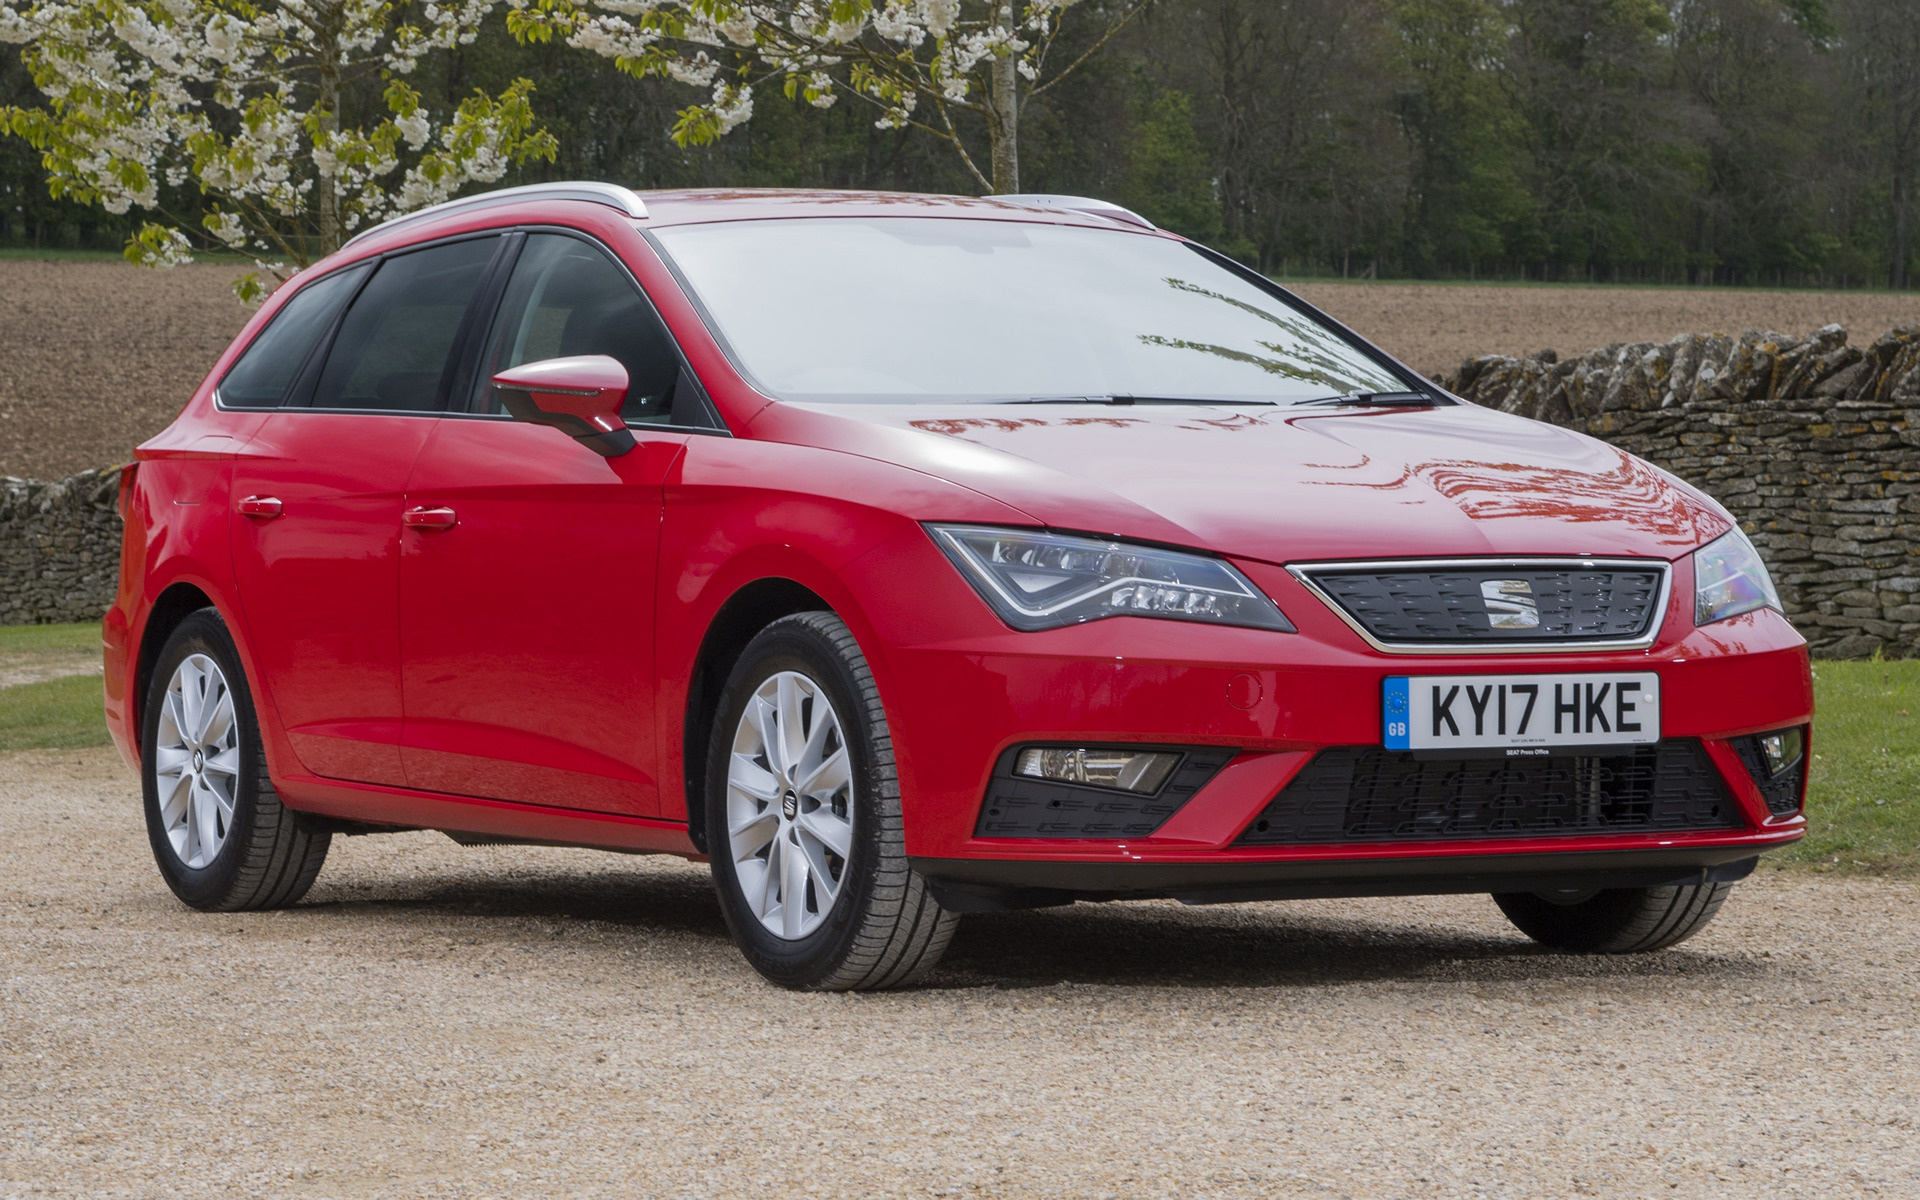 seat leon st 2017 uk wallpapers and hd images car pixel. Black Bedroom Furniture Sets. Home Design Ideas